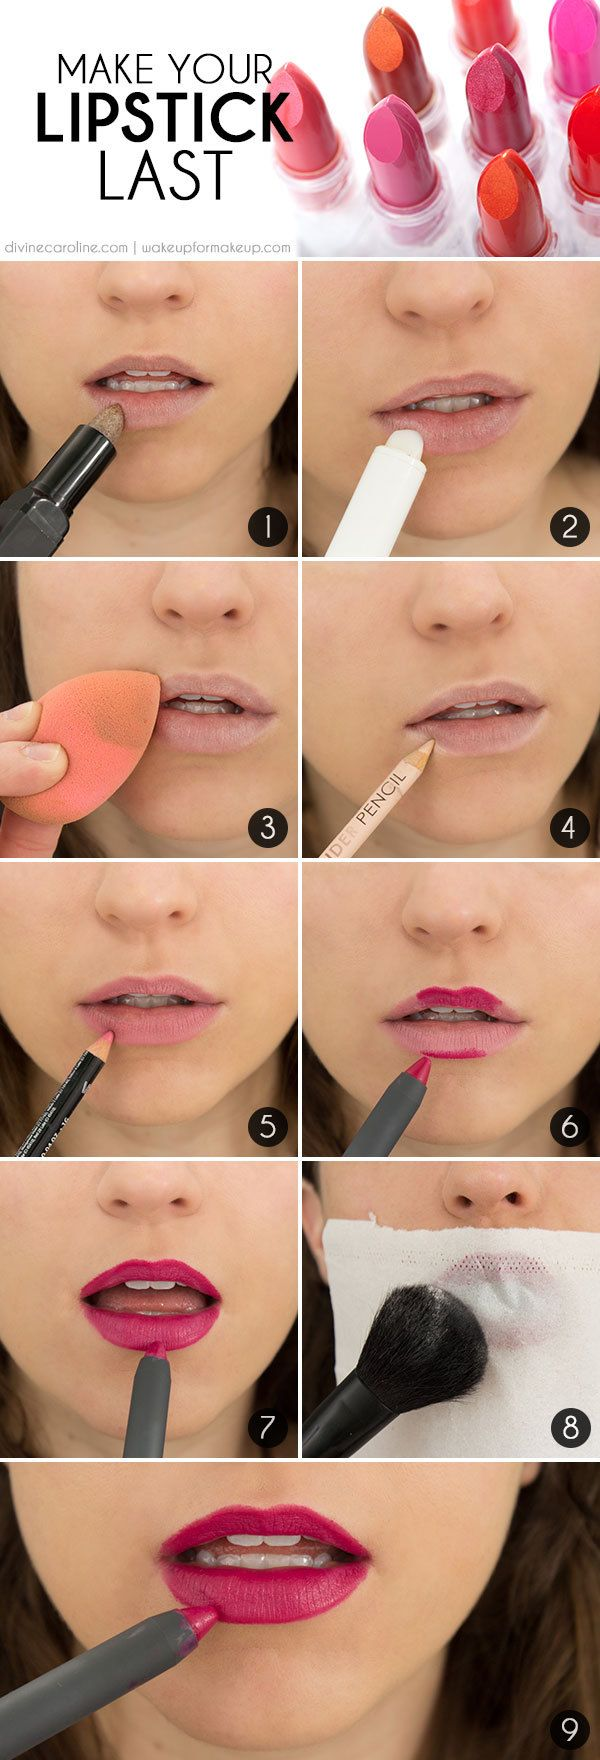 How To Make Those Lips Last ALL Day Long!: